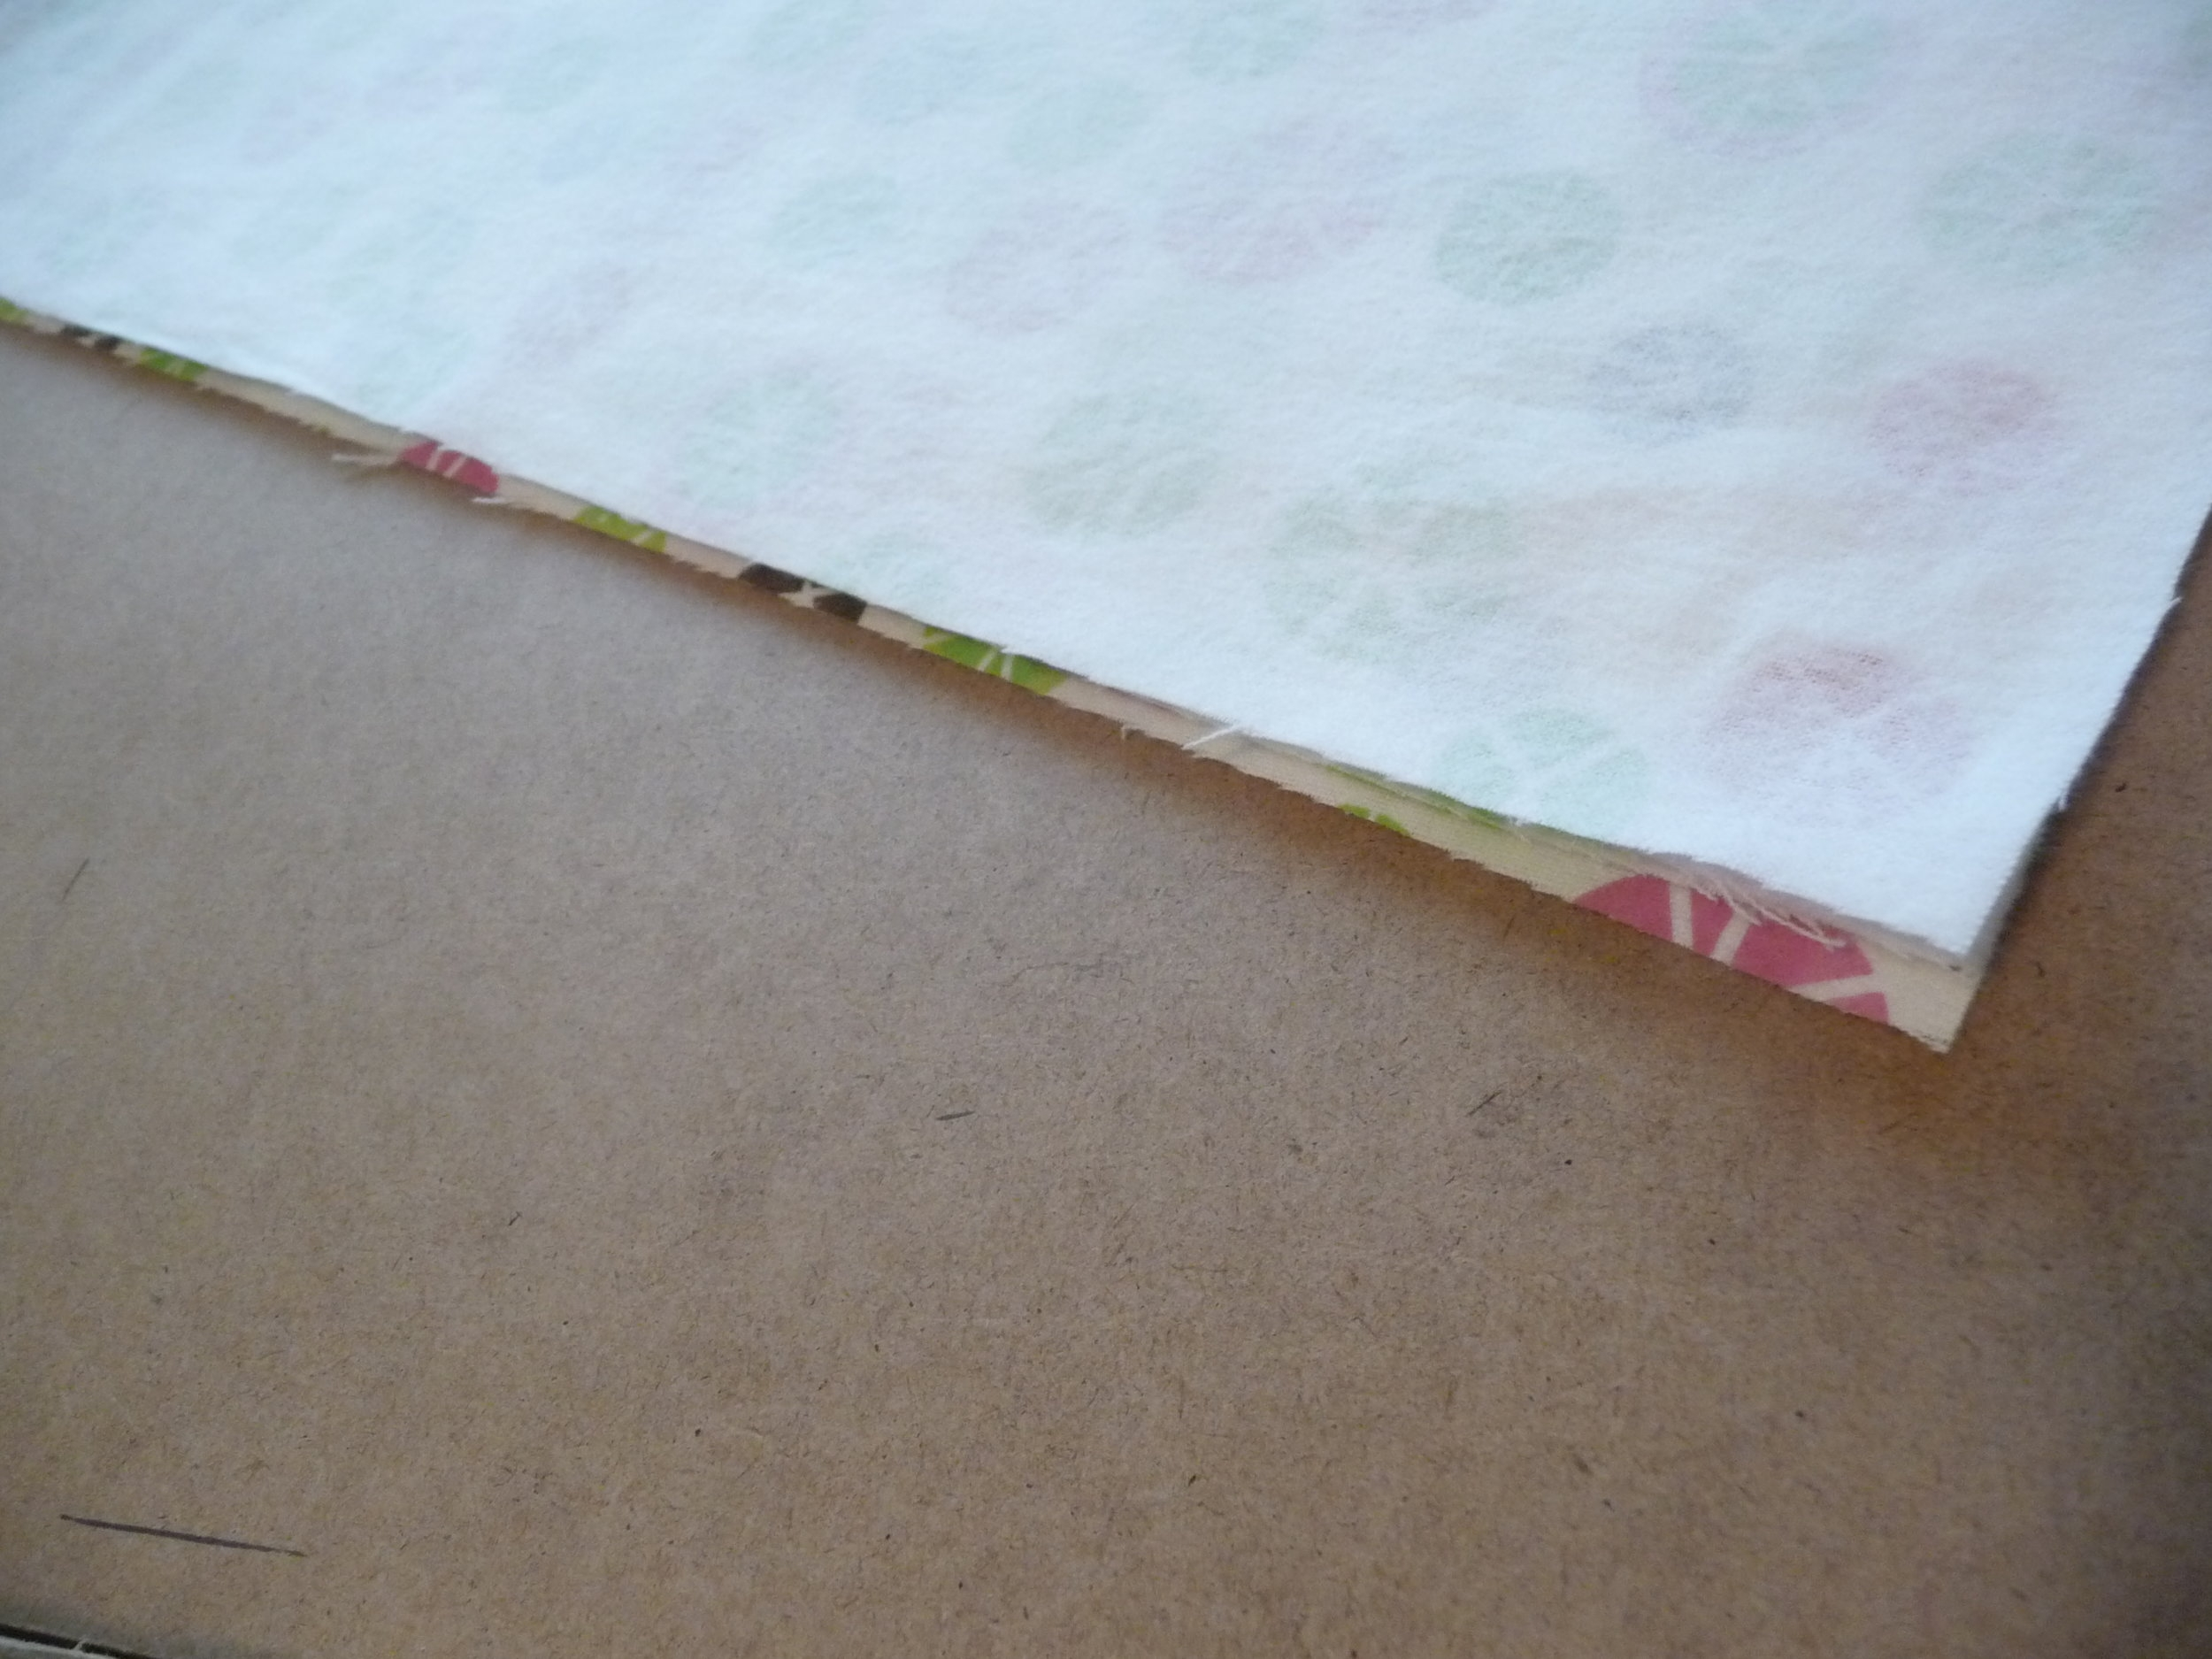 #4 - After folding the fabric over twice smooth it out so the cut edges are as straight and lined up with the fabric underneath. If you look at the picture above you will see because of how the fabric was originally cut they do  not all line up straight. With a cut along this edge you can straighten it right up, ready for the cutting of diapers.